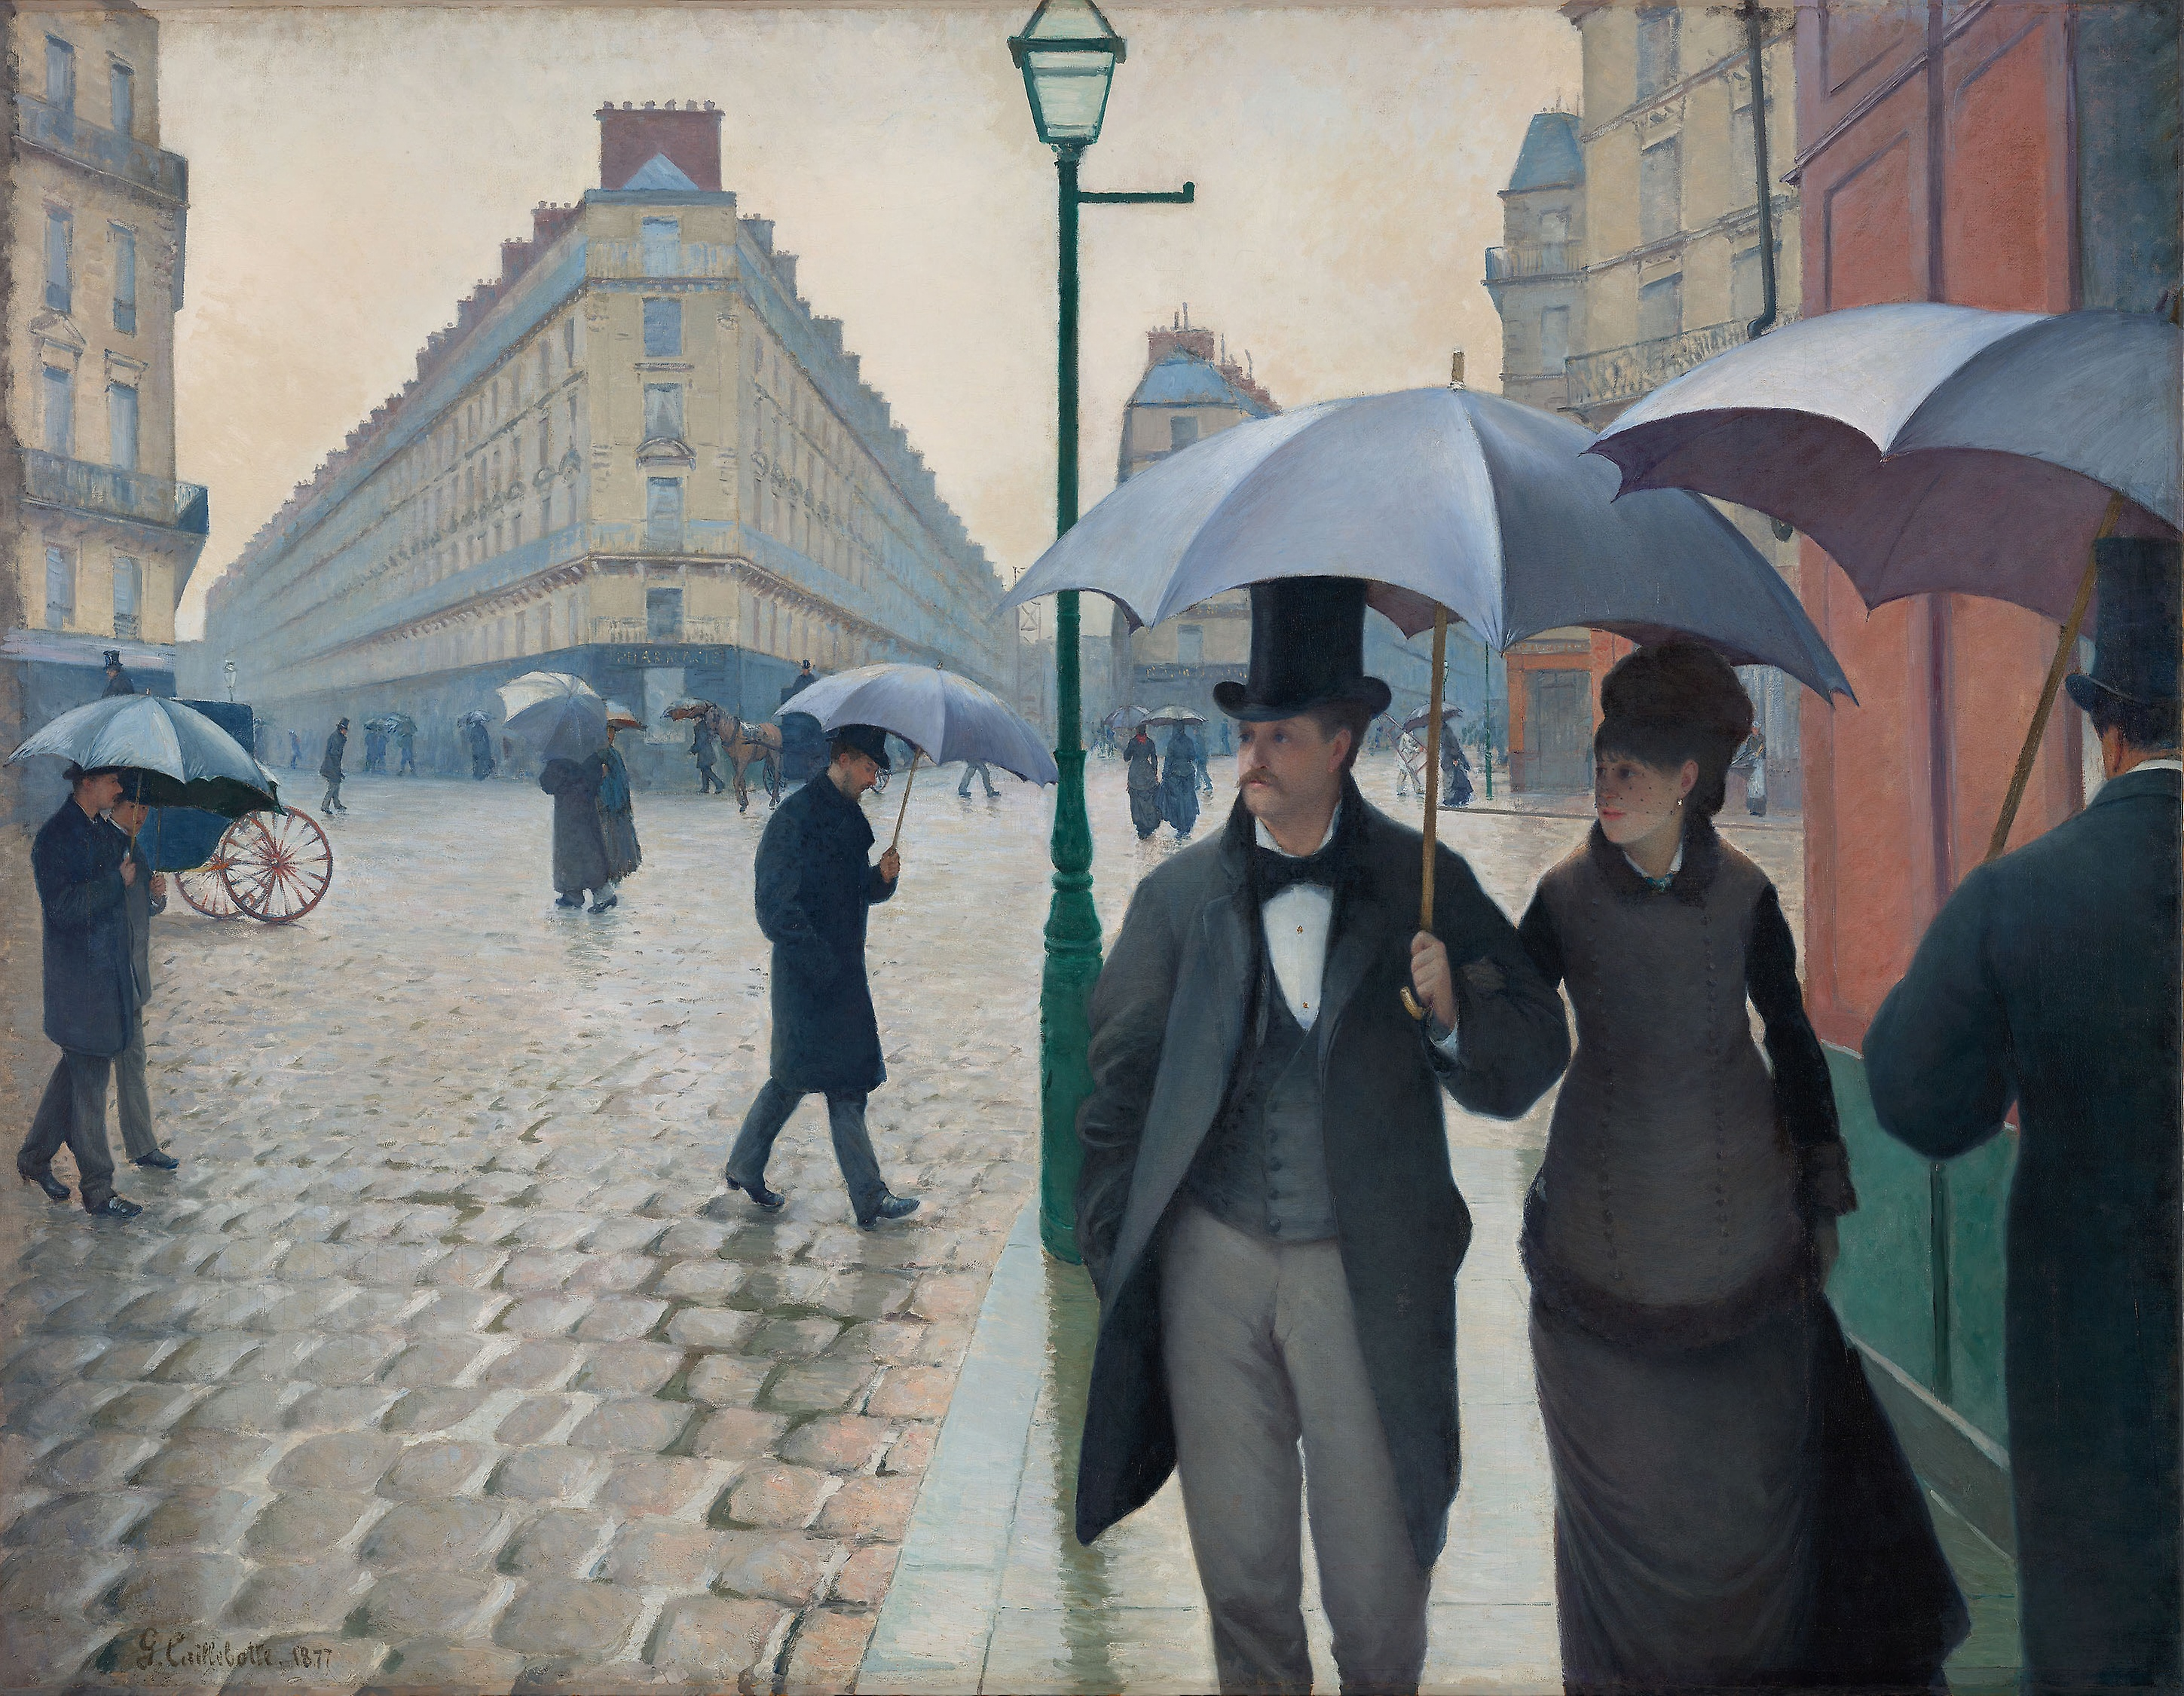 Artwork by Gustave Caillebotte; Public Domain